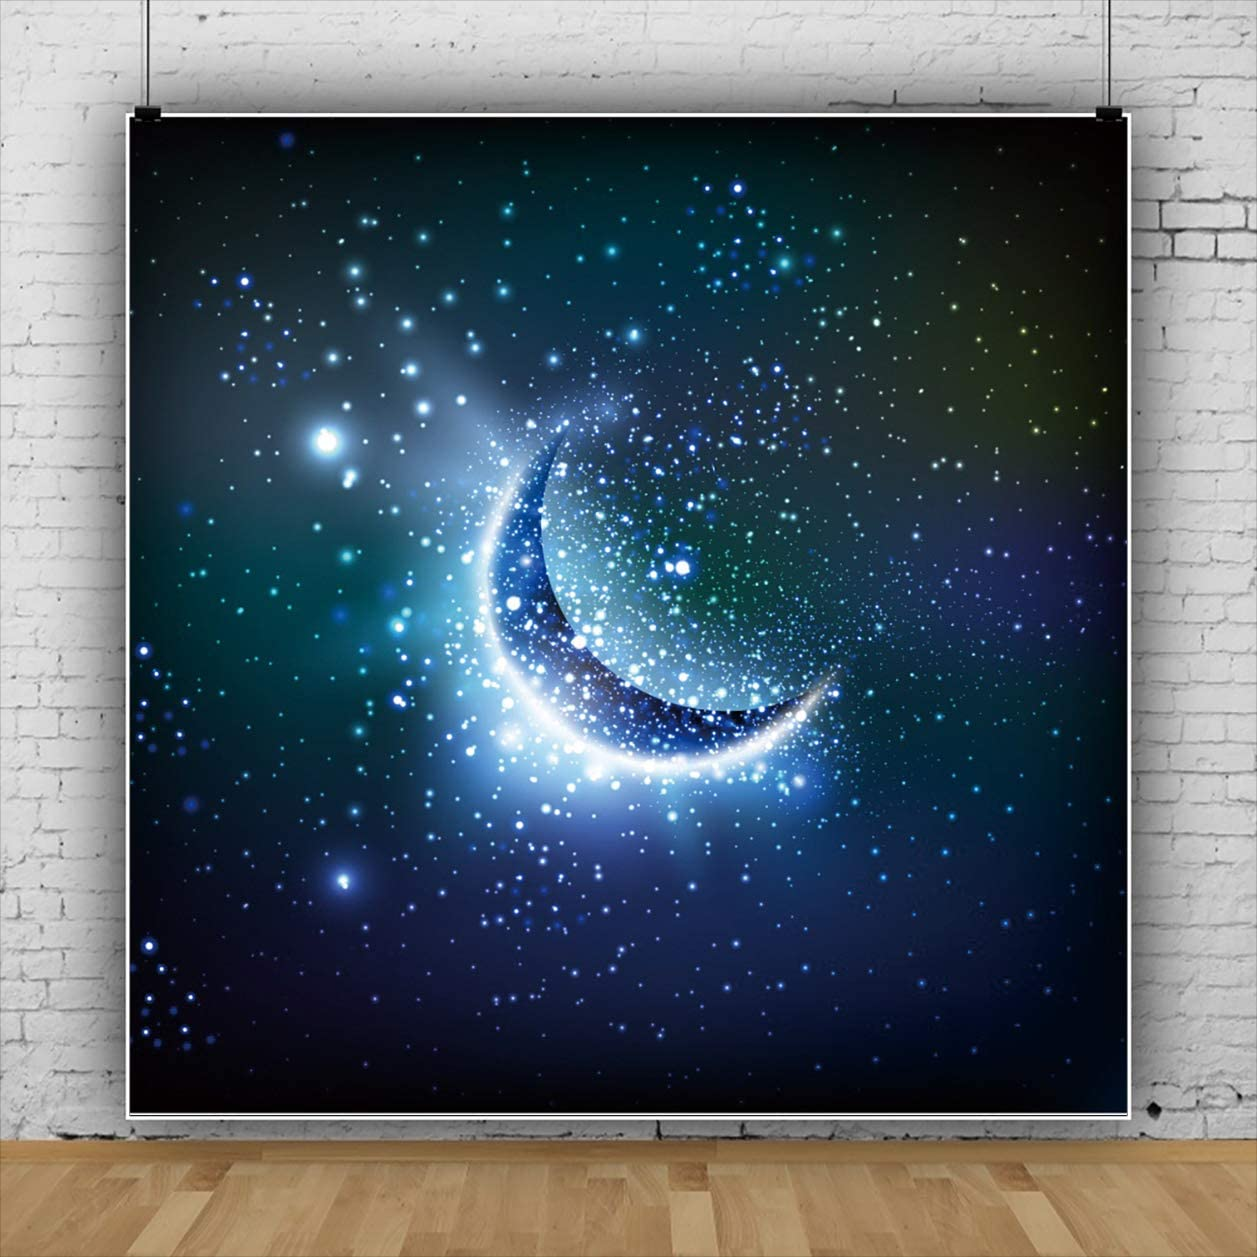 YEELE Shiny Crescent Moon Backdrop 6.5x6.5ft Twinkle Stars in Deep Space Starry Sky Photography Background Sci-fi Event Space Theme Kids Birthday Party Photobooth Studio Props Digital Wallpaper